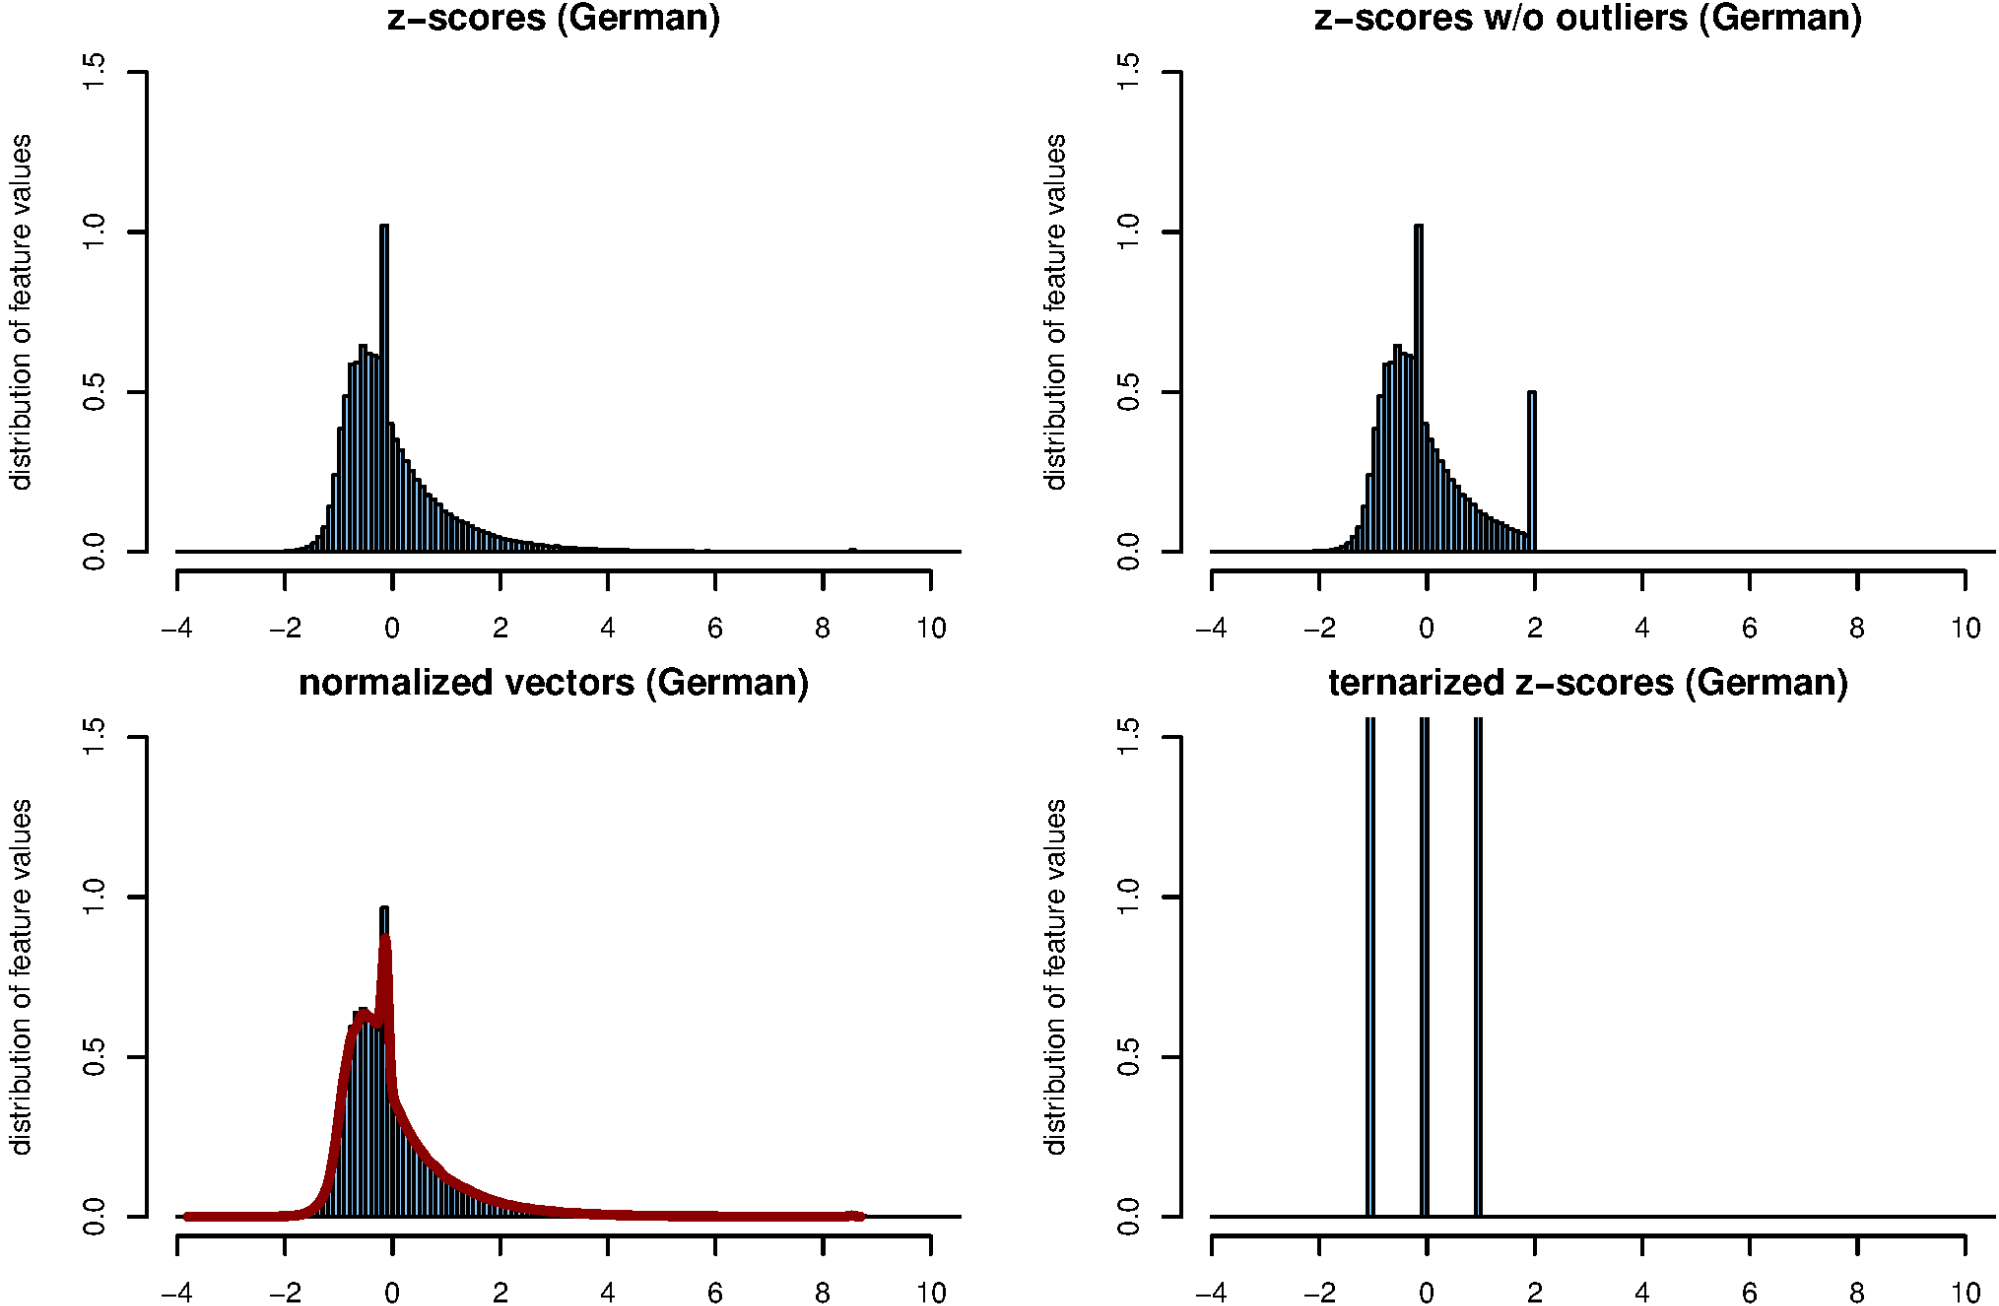 Figure 4: Distributions of feature vectors for all 75 texts, using vectors of 5000 most frequent words. The table shows the distribution of the original                                   (upper left), the distribution after length-normalizing the vectors (lower left), the distribution after clamping outliers with |                                 | > 2 (upper right) and a ternary quantization to the values –1, 0 and +1 (lower right). The red curve in the lower left graph shows the                                   before normalization; the direct comparison shows the normalization has only minimal effect and almost does not reduce outliers. The thresholds for the ternary quantization,                                   < –0.43 (–1), –0.43 ≤                                   ≤ 0.43 (0) and                                   > 0.43 (+1), have been selected such that in an ideal normal distribution, a third of all feature values would fall into each of the classes –1, 0, and +1.